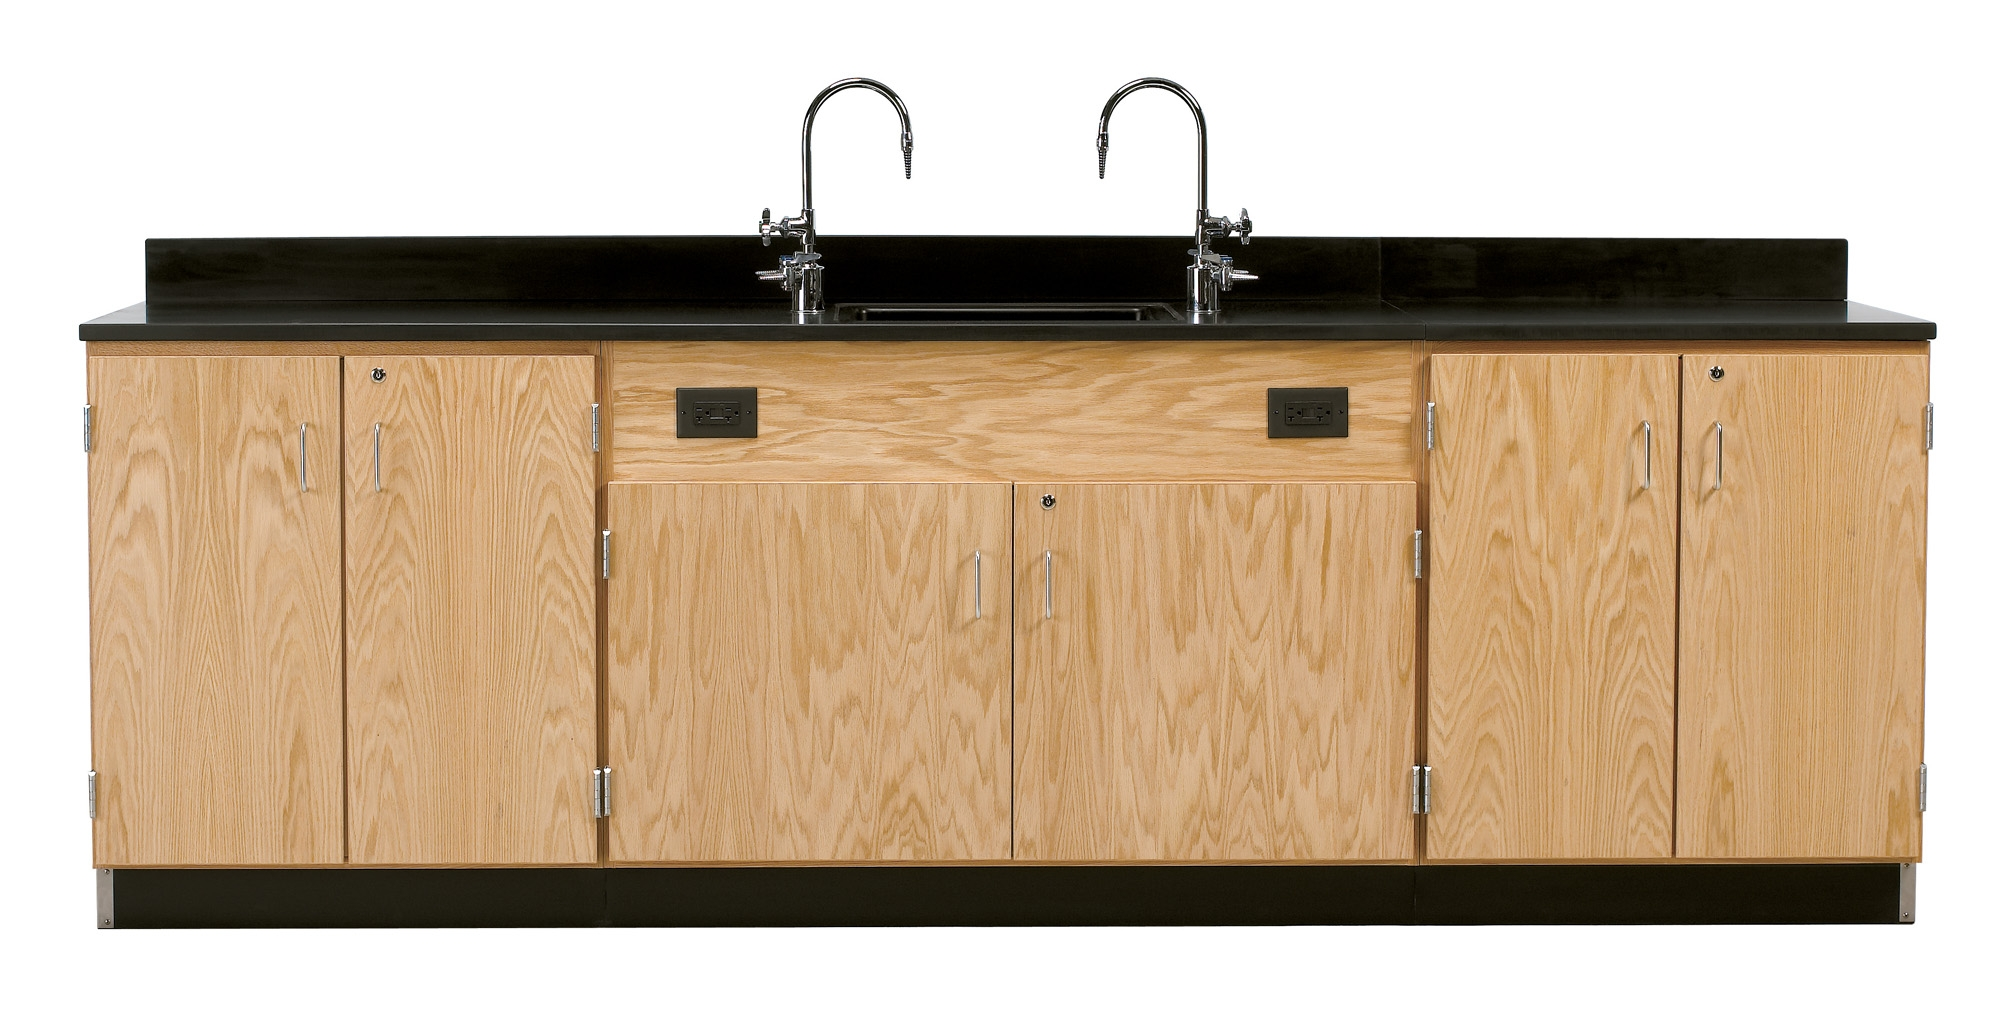 Diversified Woodcrafts Wall Service Bench with Cabinets - Epoxy Top